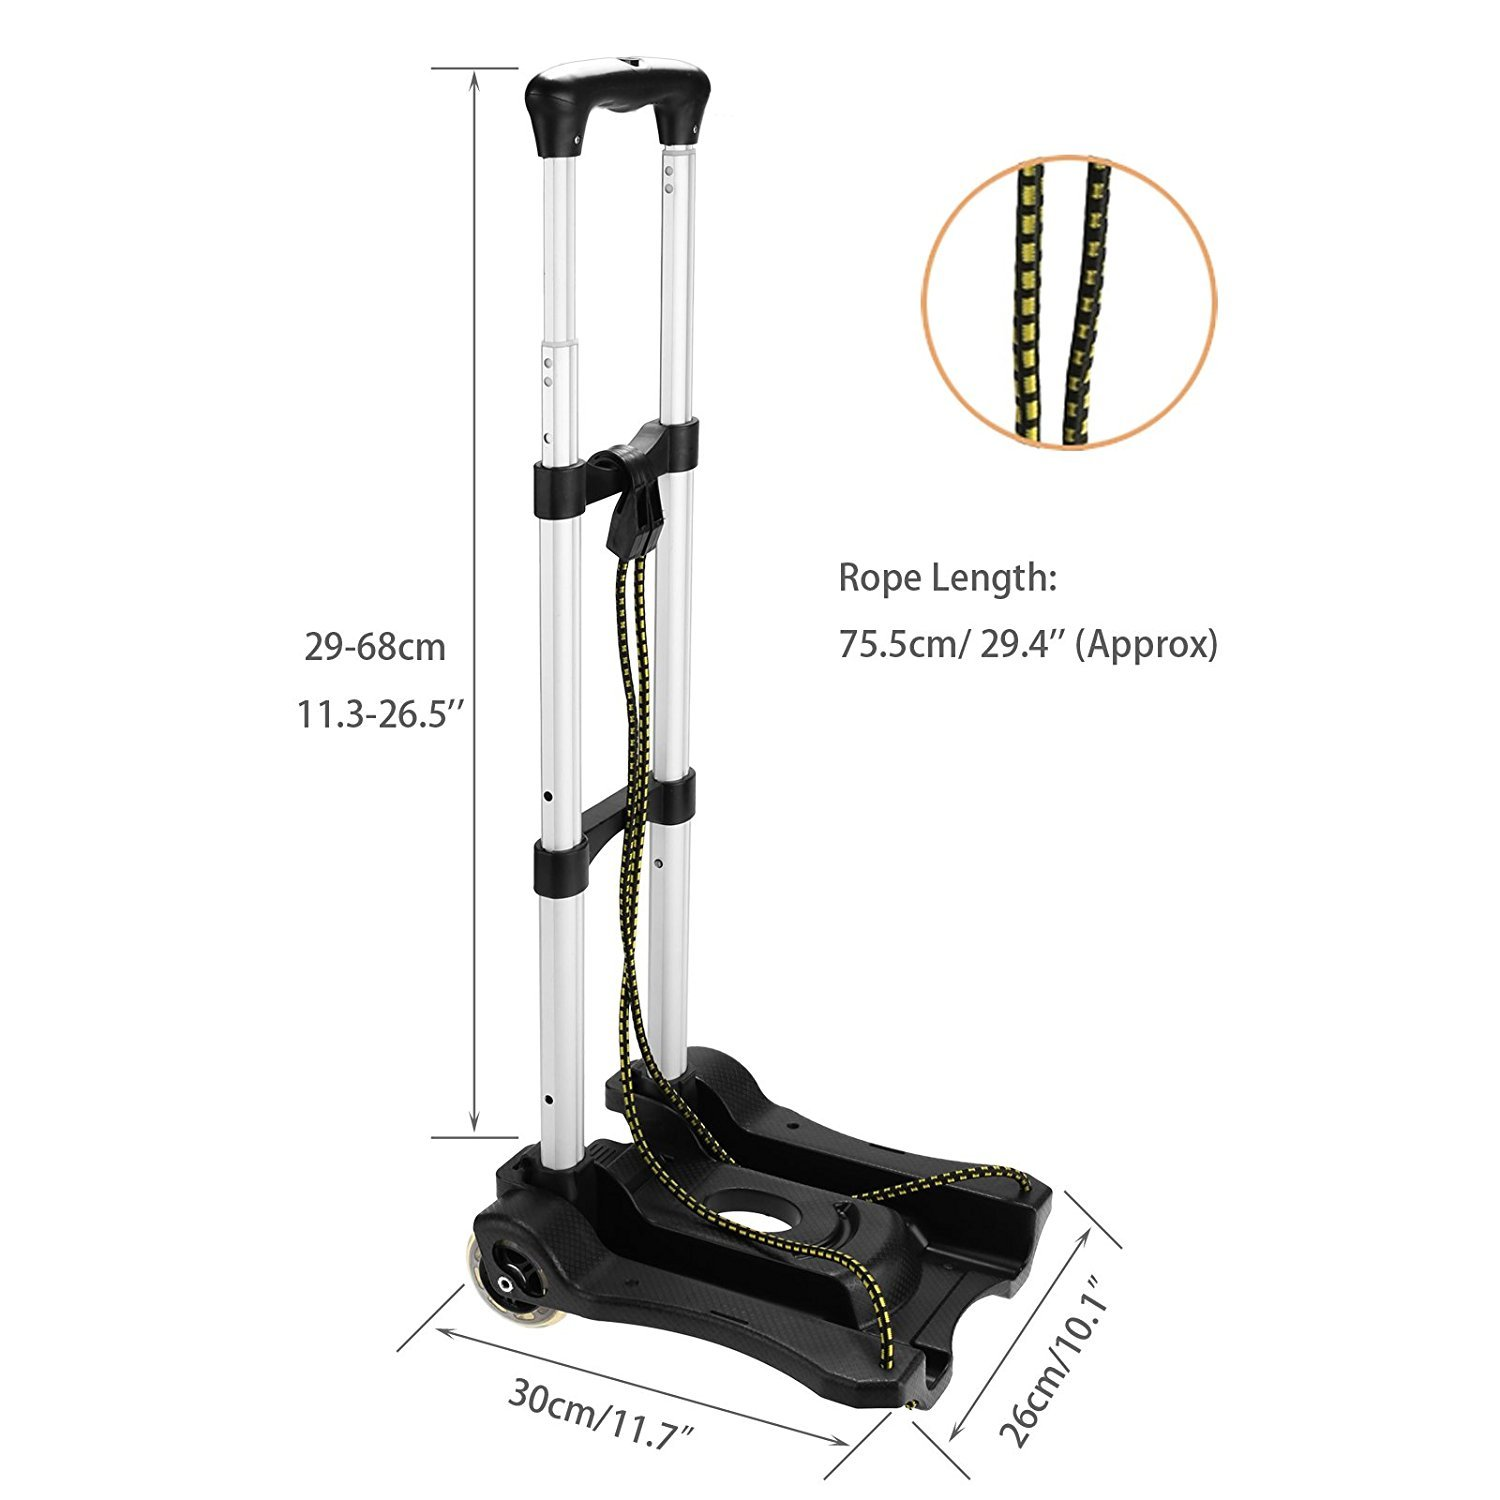 Anfan Folding Luggage Cart Portable Personal Moving Hand Truck 2 Wheels Foldable Platform Truck Shopping Cart - Support 80lbs Capacity by Anfan (Image #5)